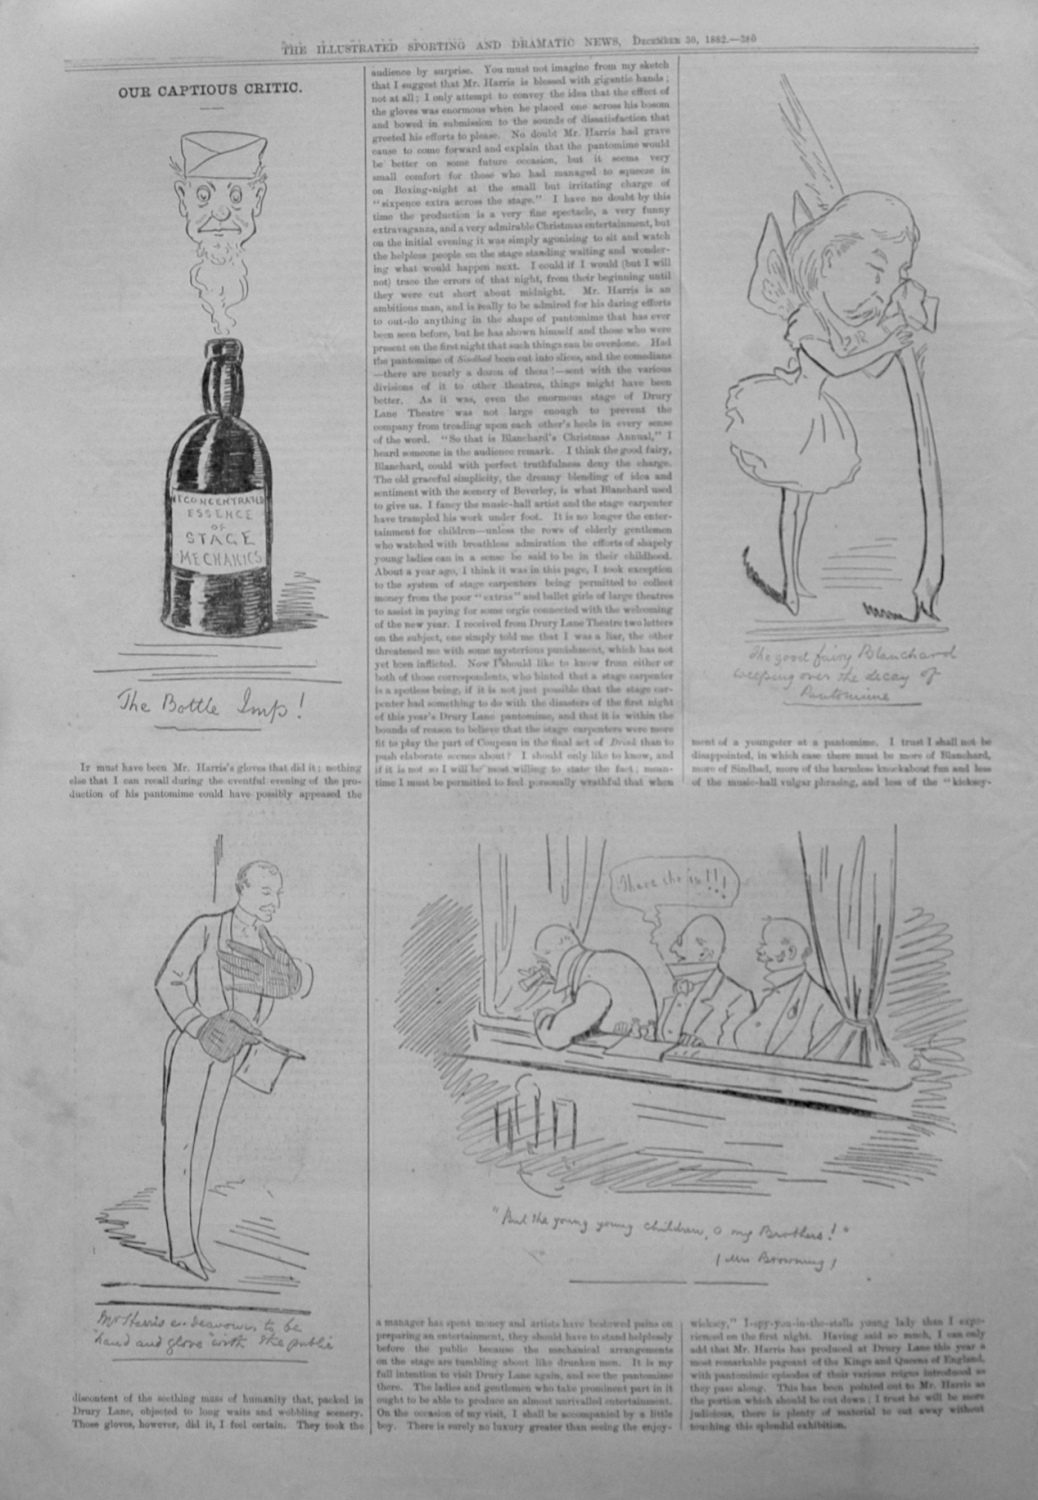 Our Captious Critic. December 30th 1882.